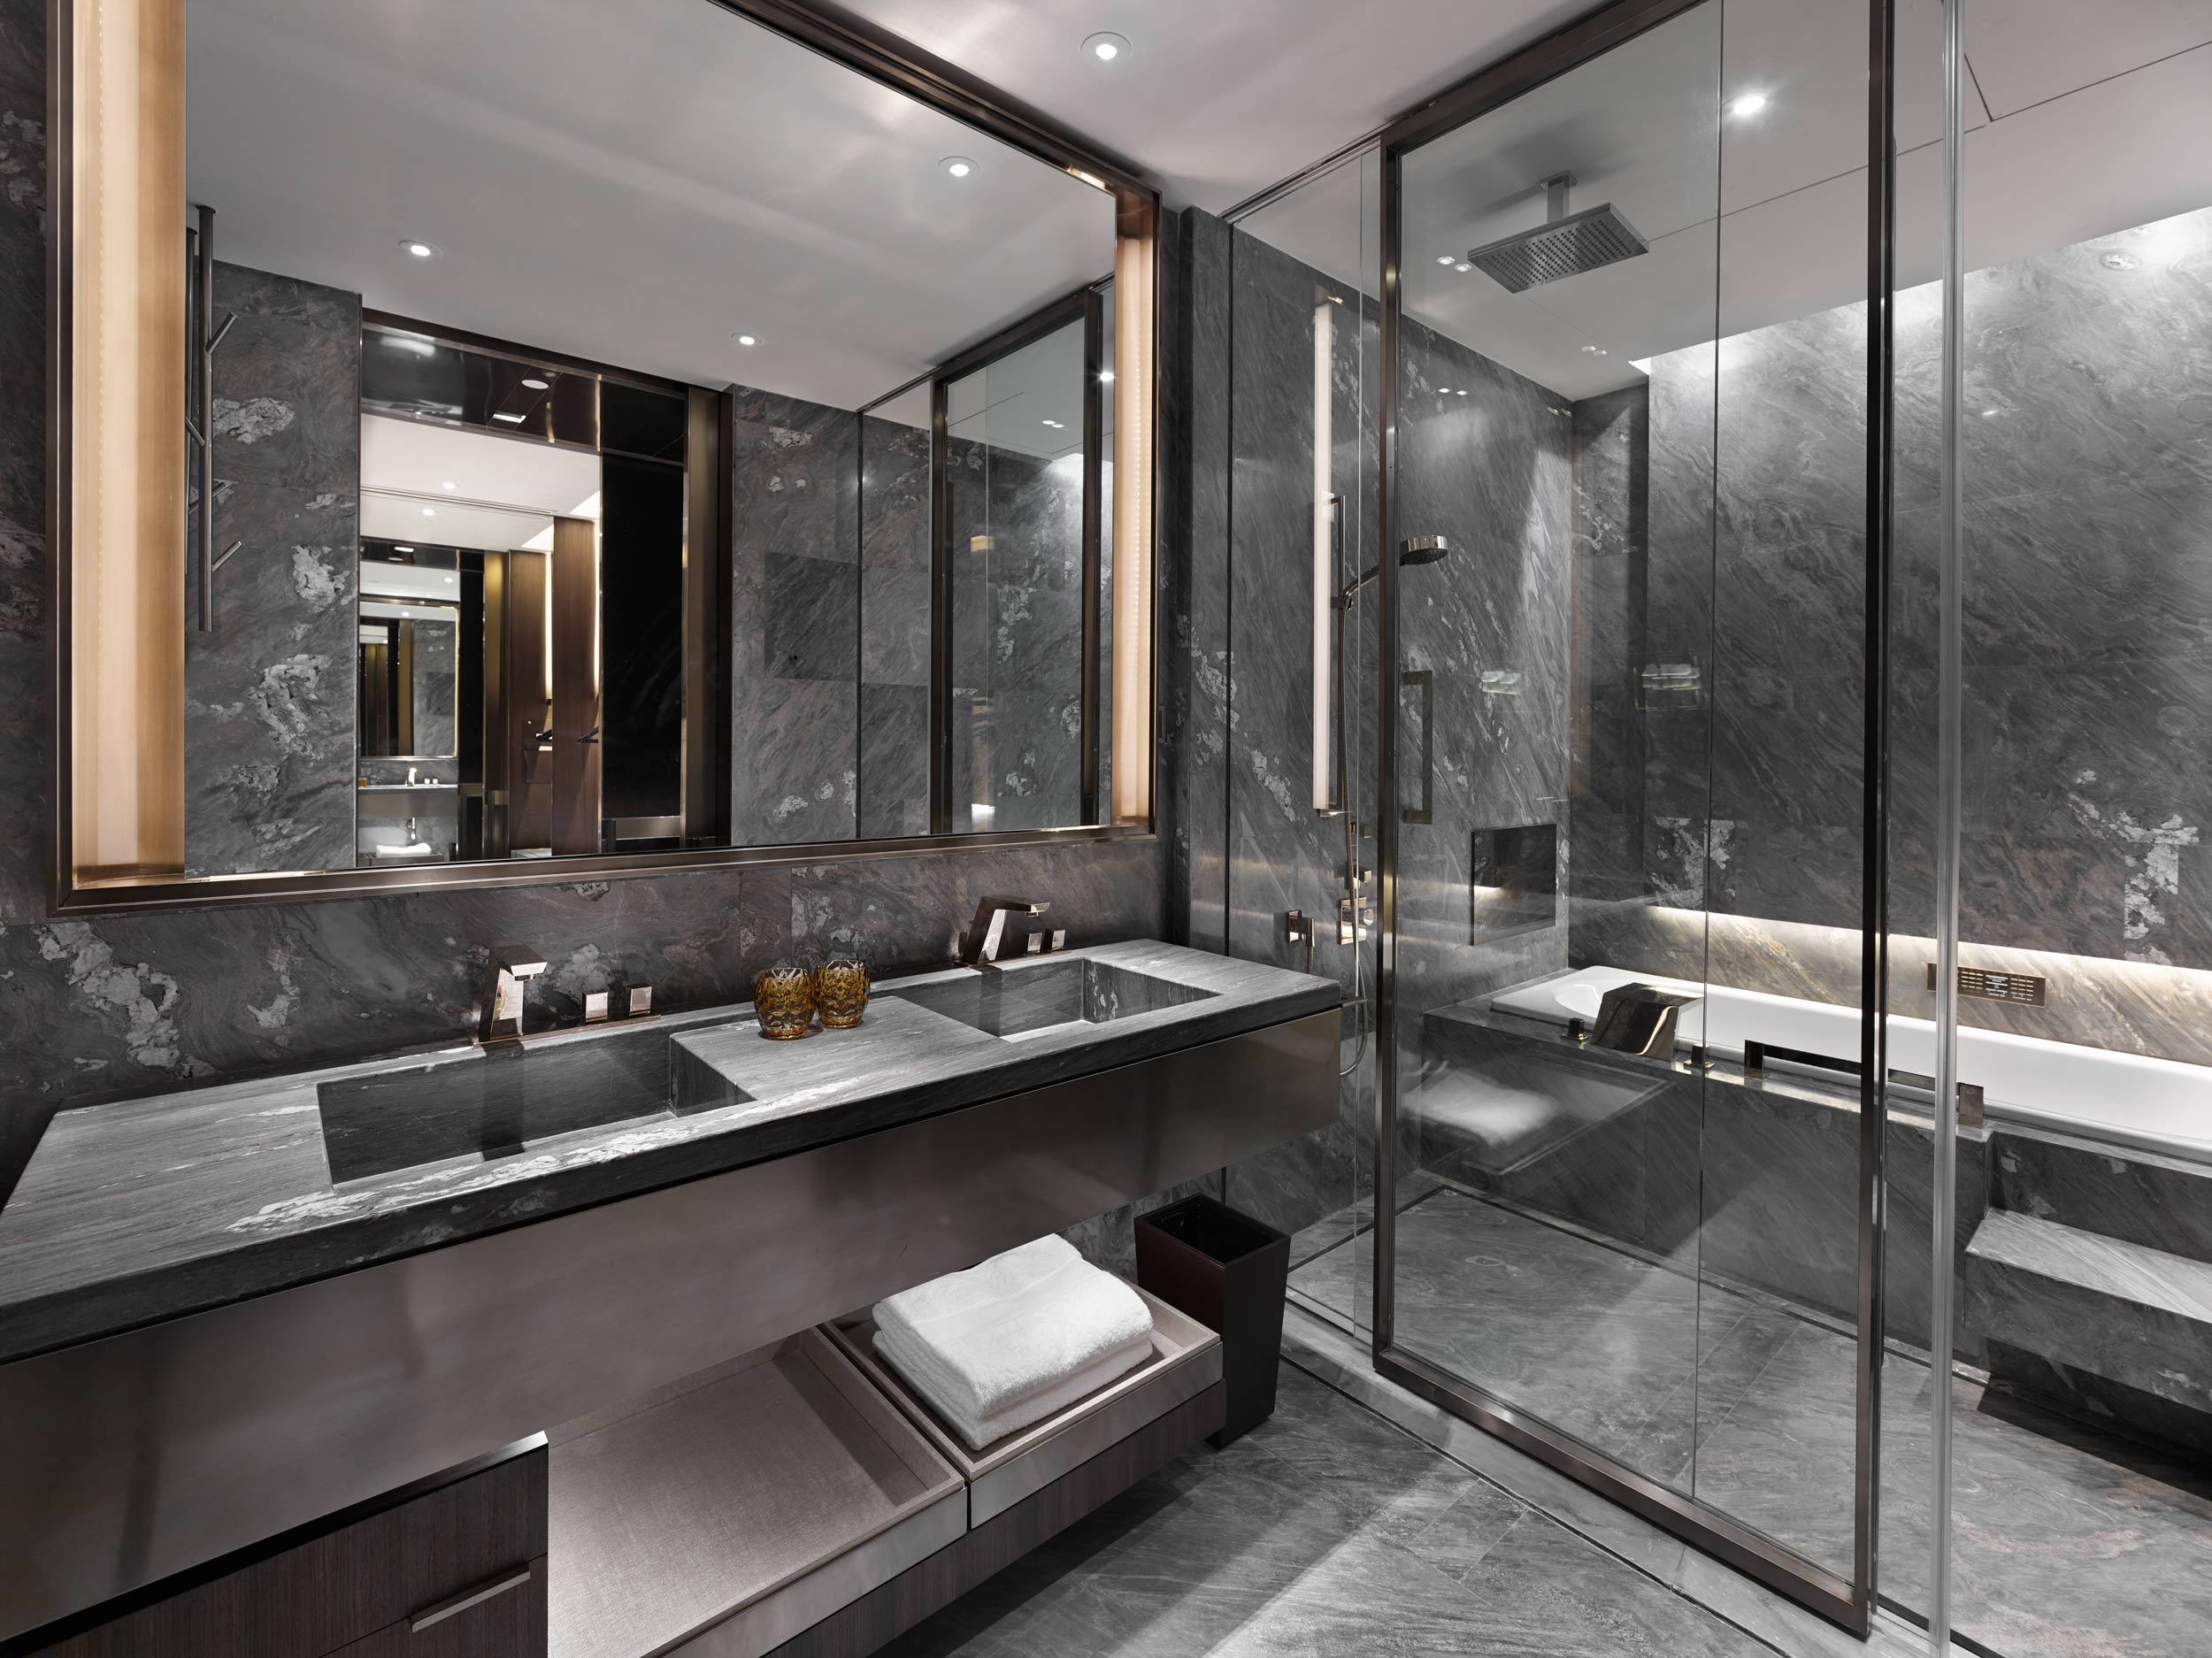 W-Hotel-bath-room-interior-Guangzhou